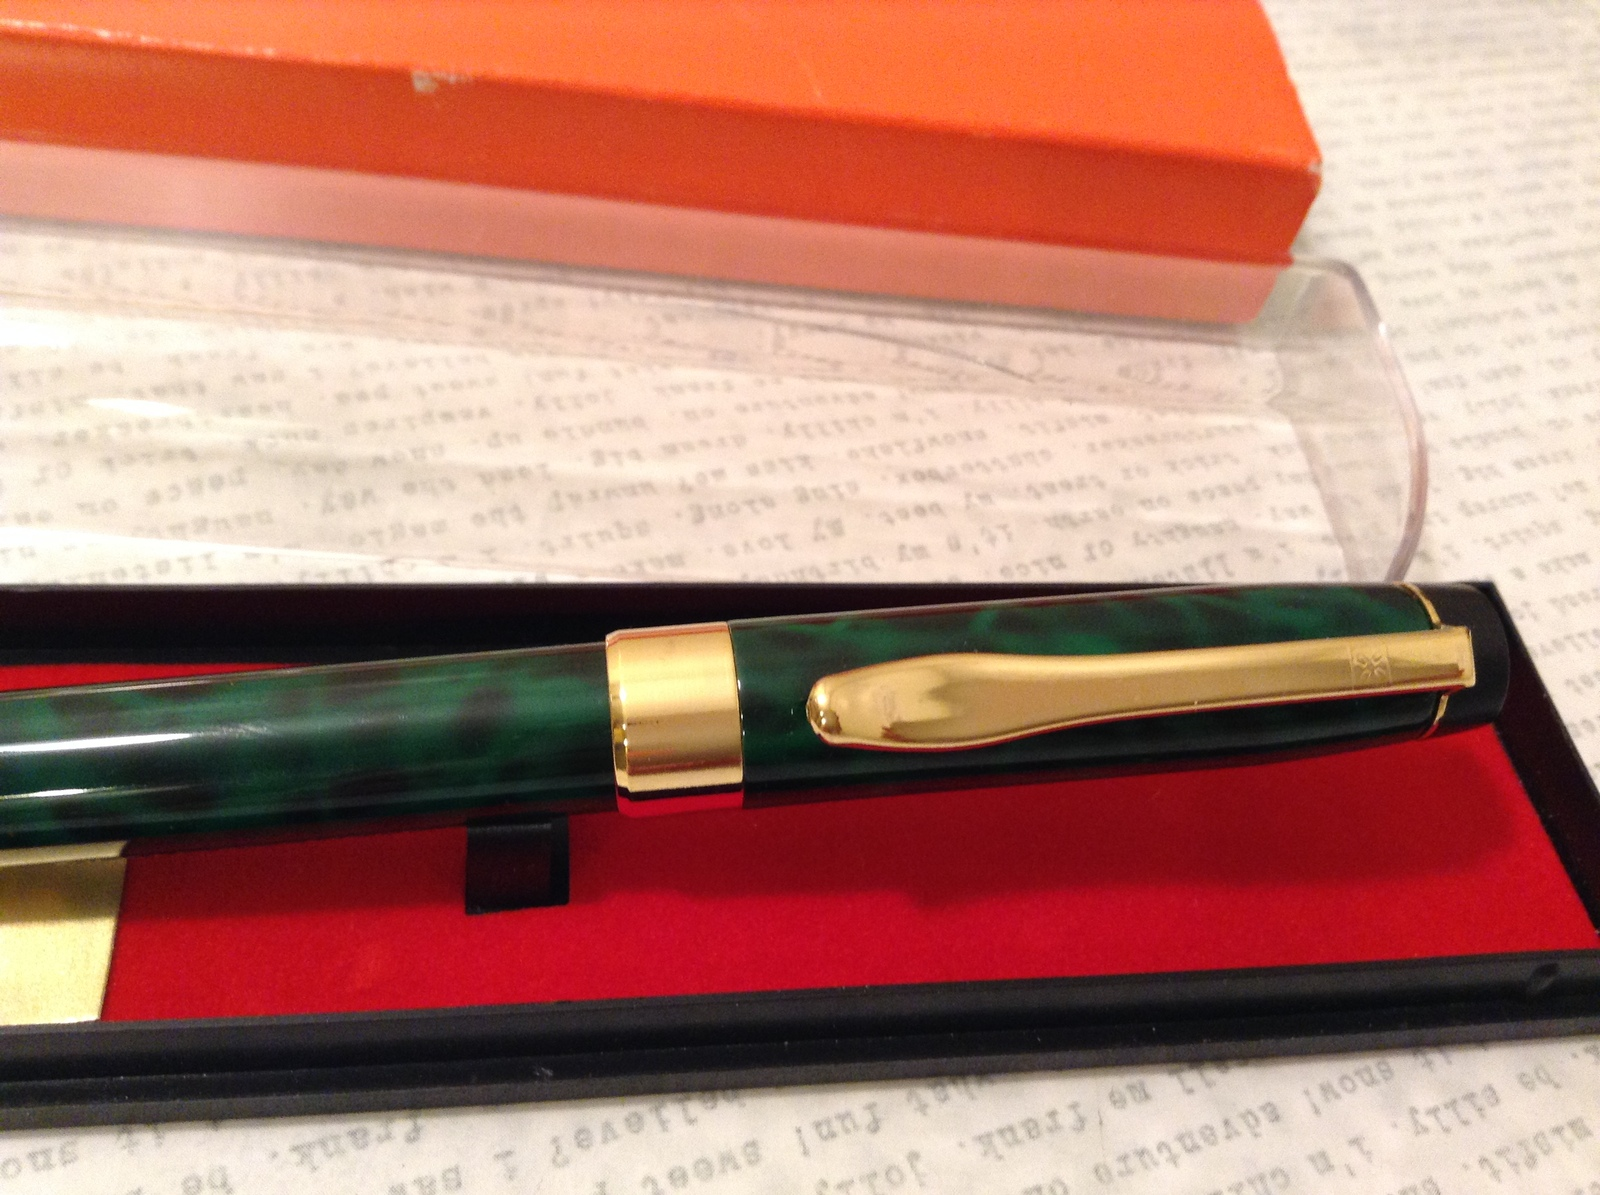 O'Leary's Smoke Shop Ball Pen with Clover Leaf Green Black Gold in Case